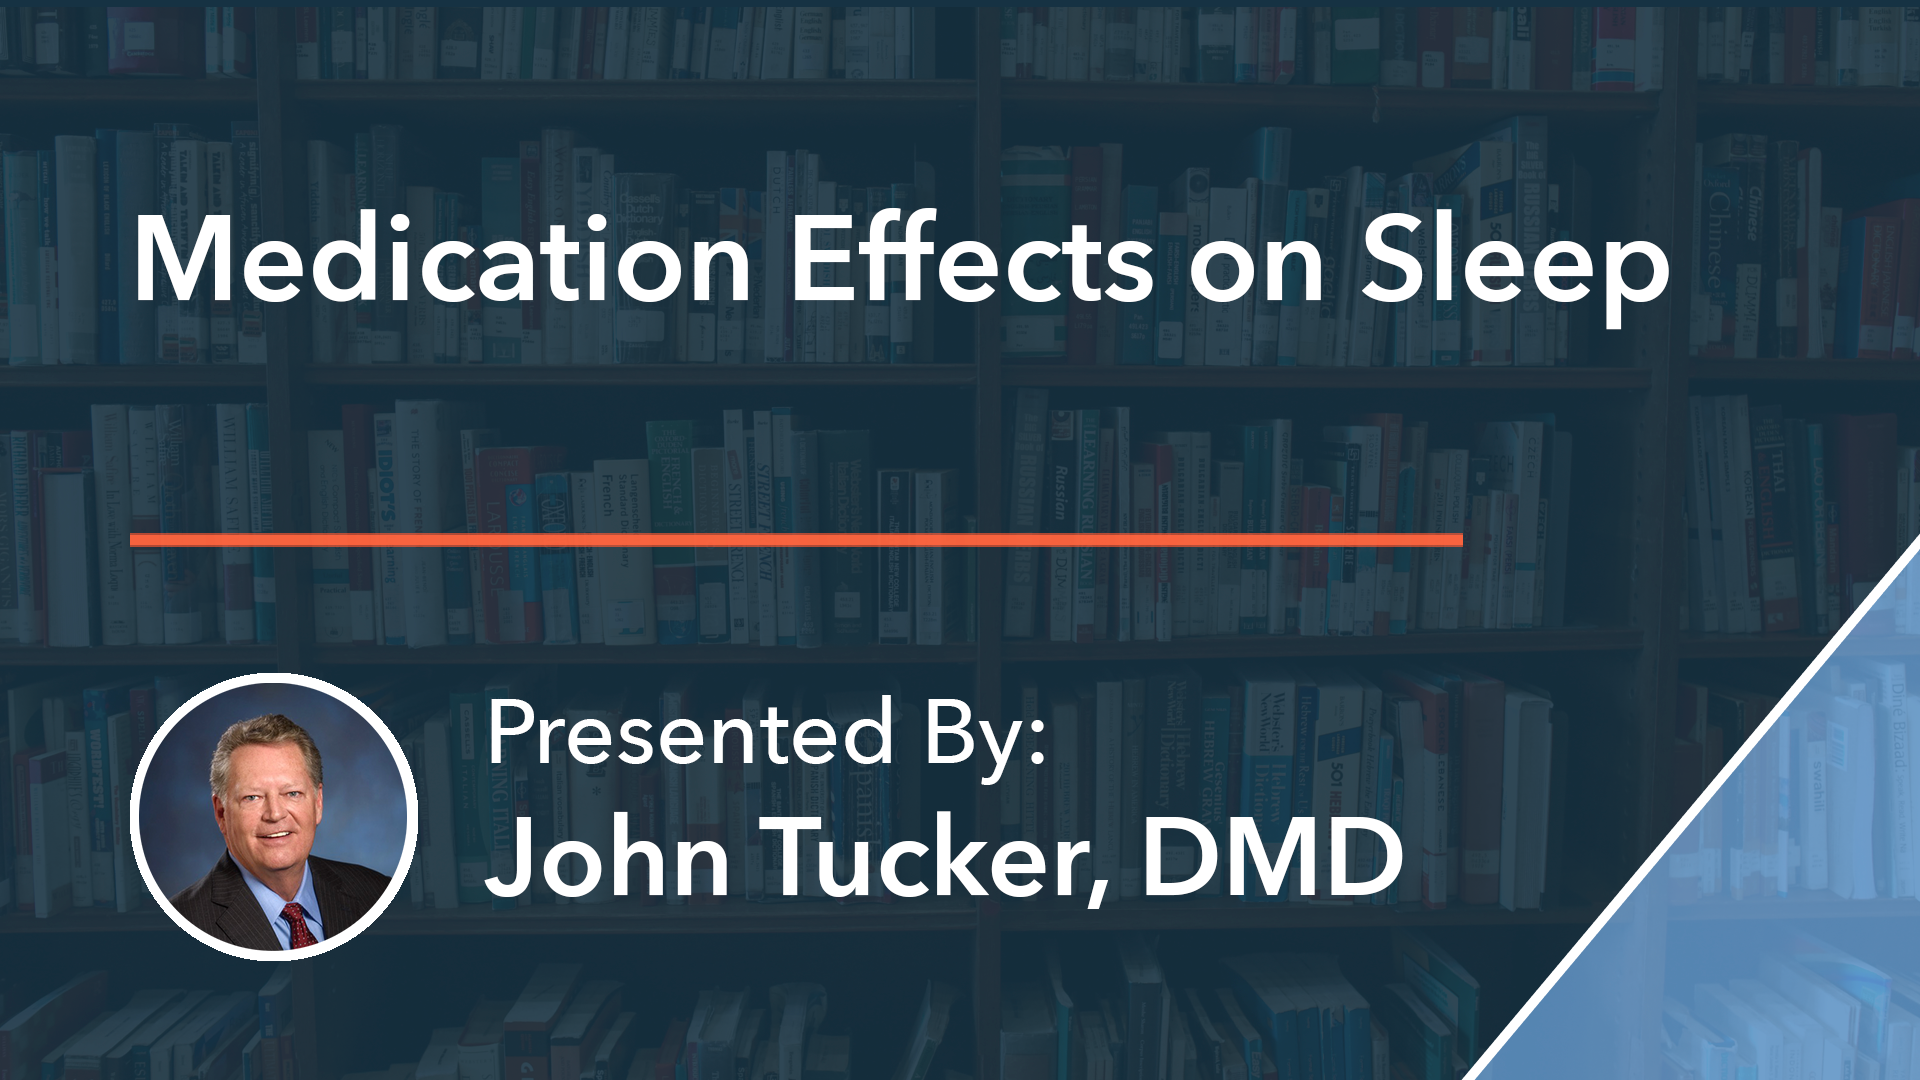 Medication Effects on Sleep Dr John Tucker